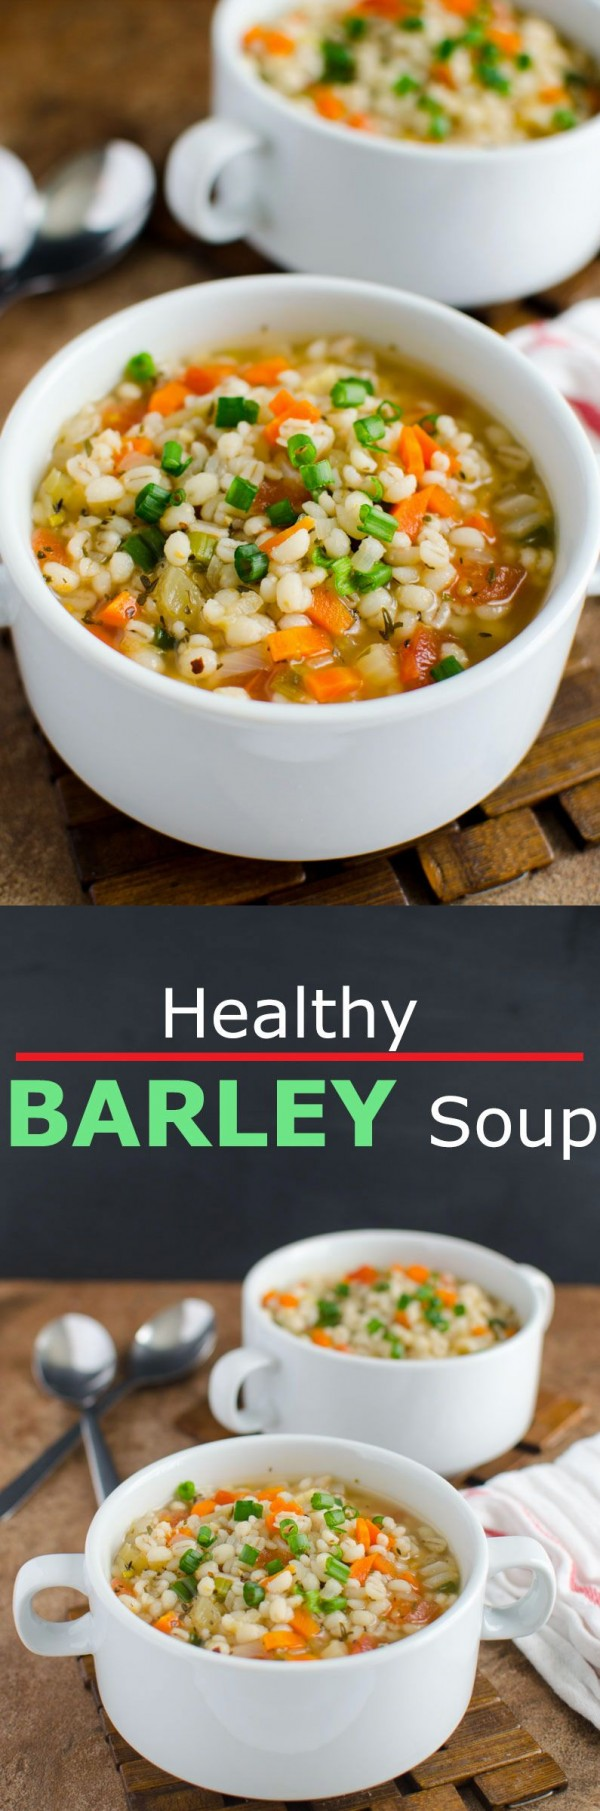 Get the recipe Healthy Barley Soup @recipes_to_go